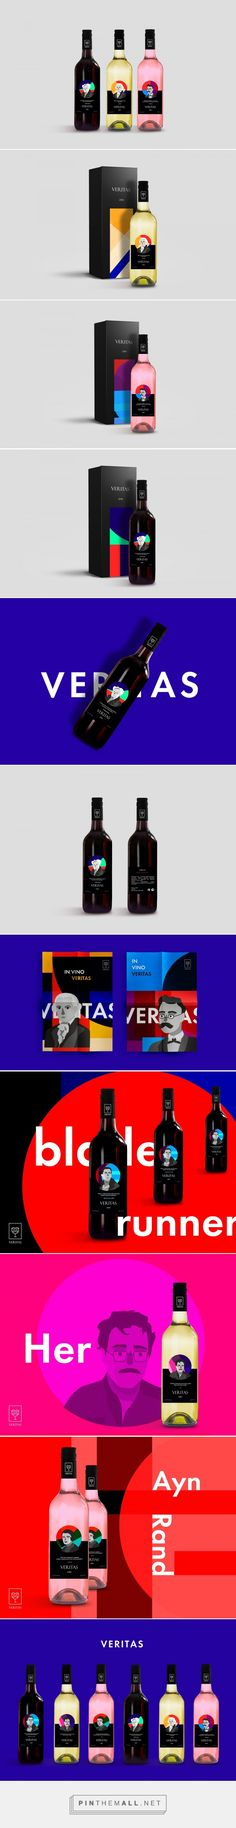 Veritas Wine - Packaging of the World - Creative Package Design Gallery - http://www.packagingoftheworld.com/2017/10/veritas.html